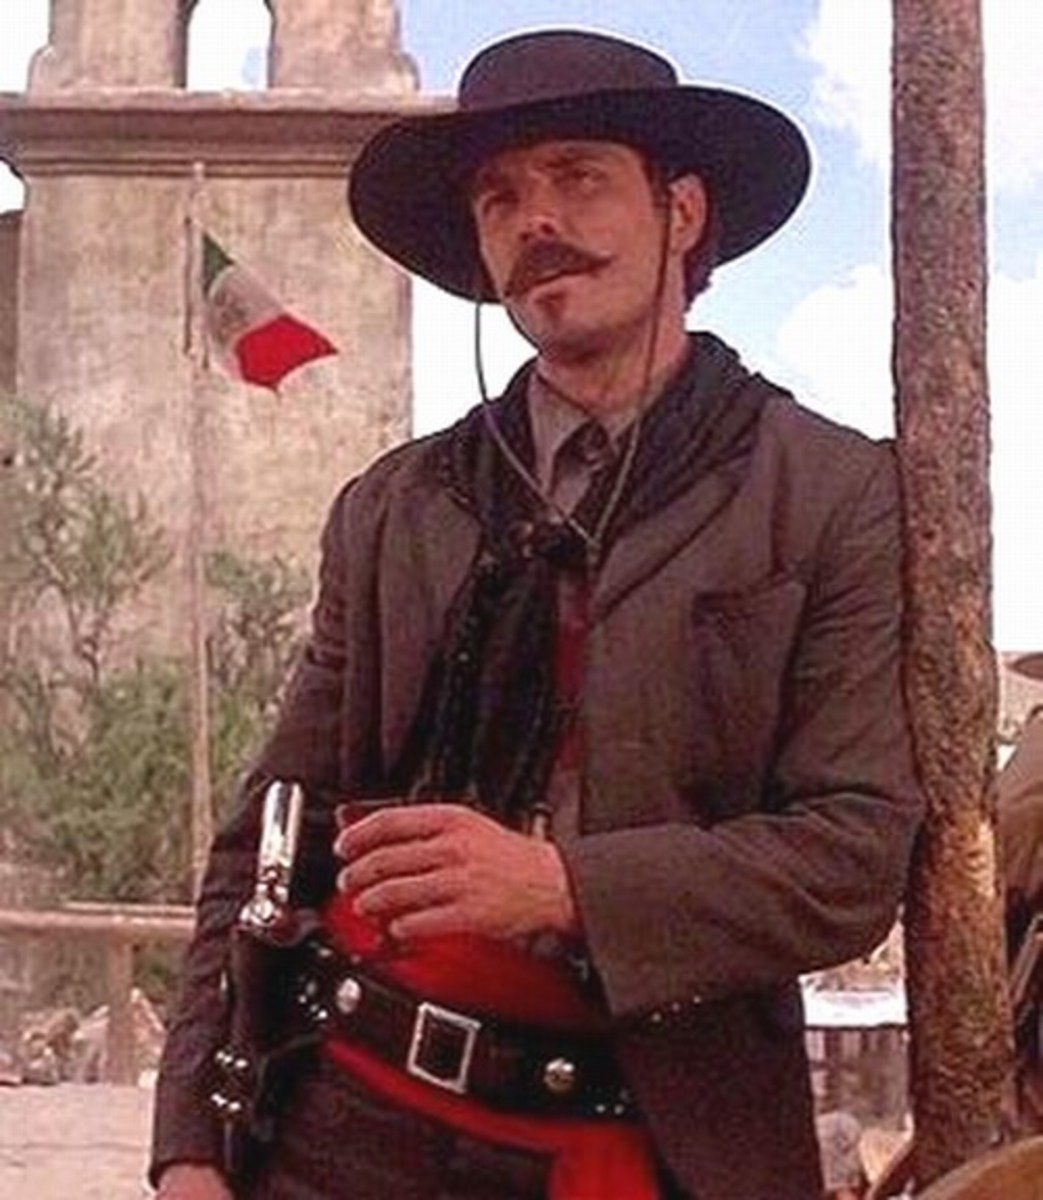 Michael Biehn as Johnny Ringo in Tombstone